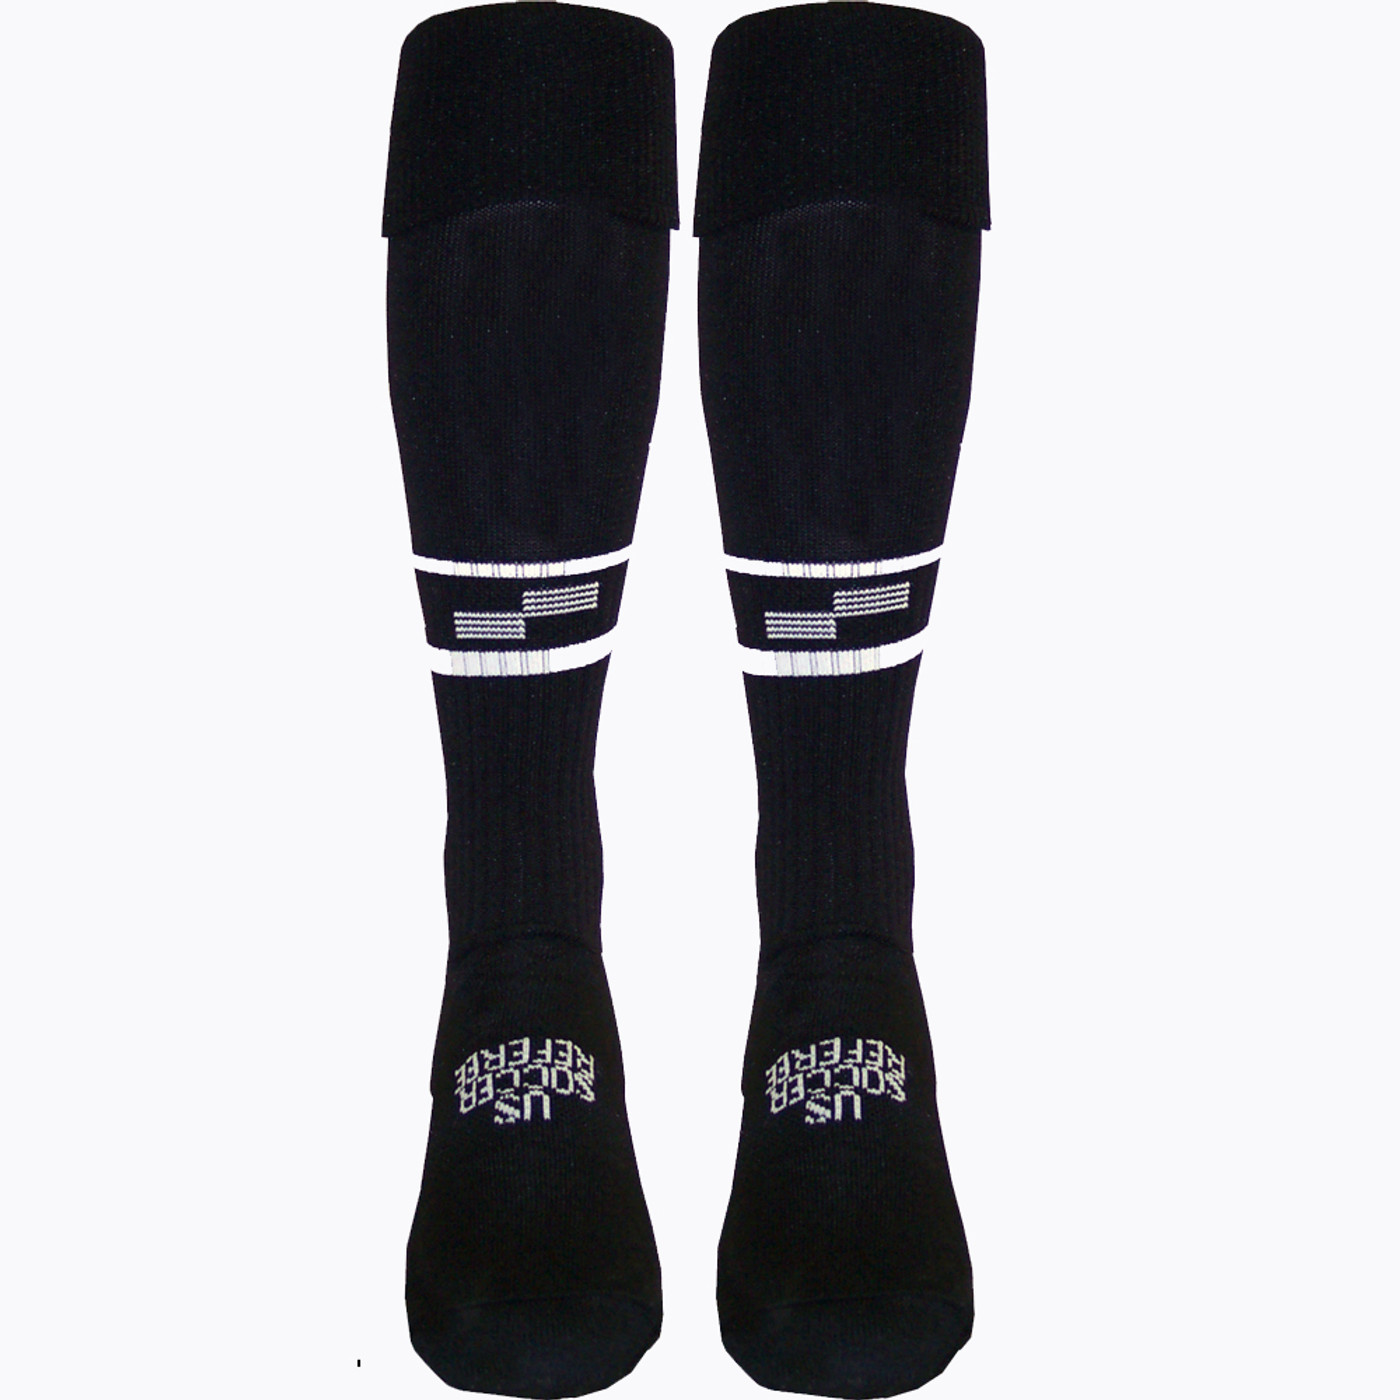 1305CL Official U.S. Soccer Two Stripe Uniform Sock